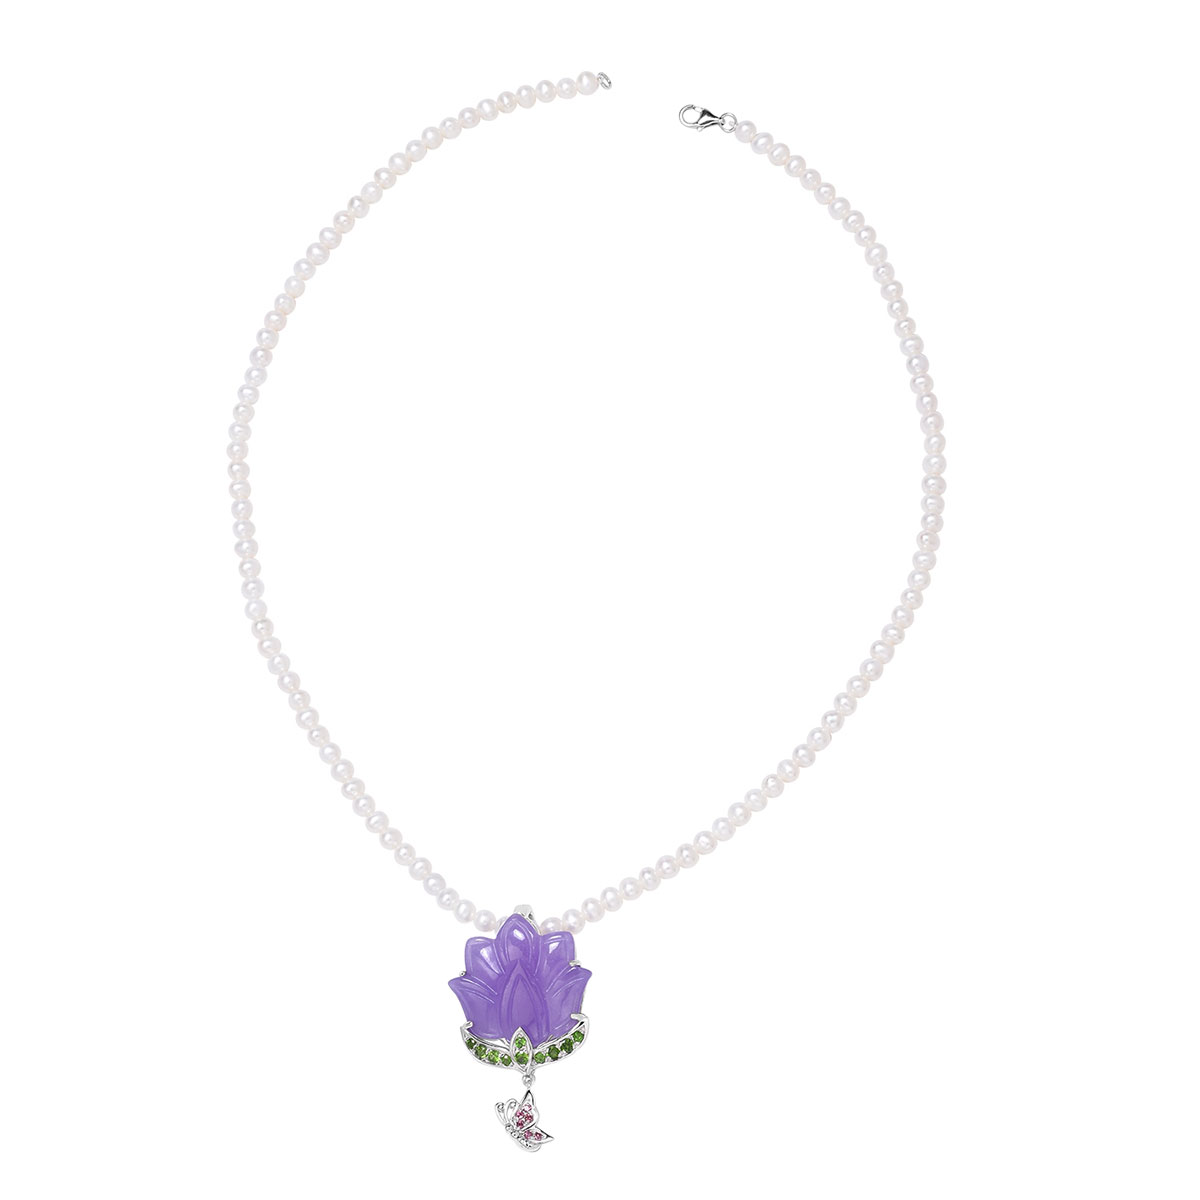 80e37702b Burmese Purple Jade Carved, Multi Gemstone Pendant With Pearl Beaded  Necklace (18 in) in Sterling Silver 20.95 ctw | Shop LC